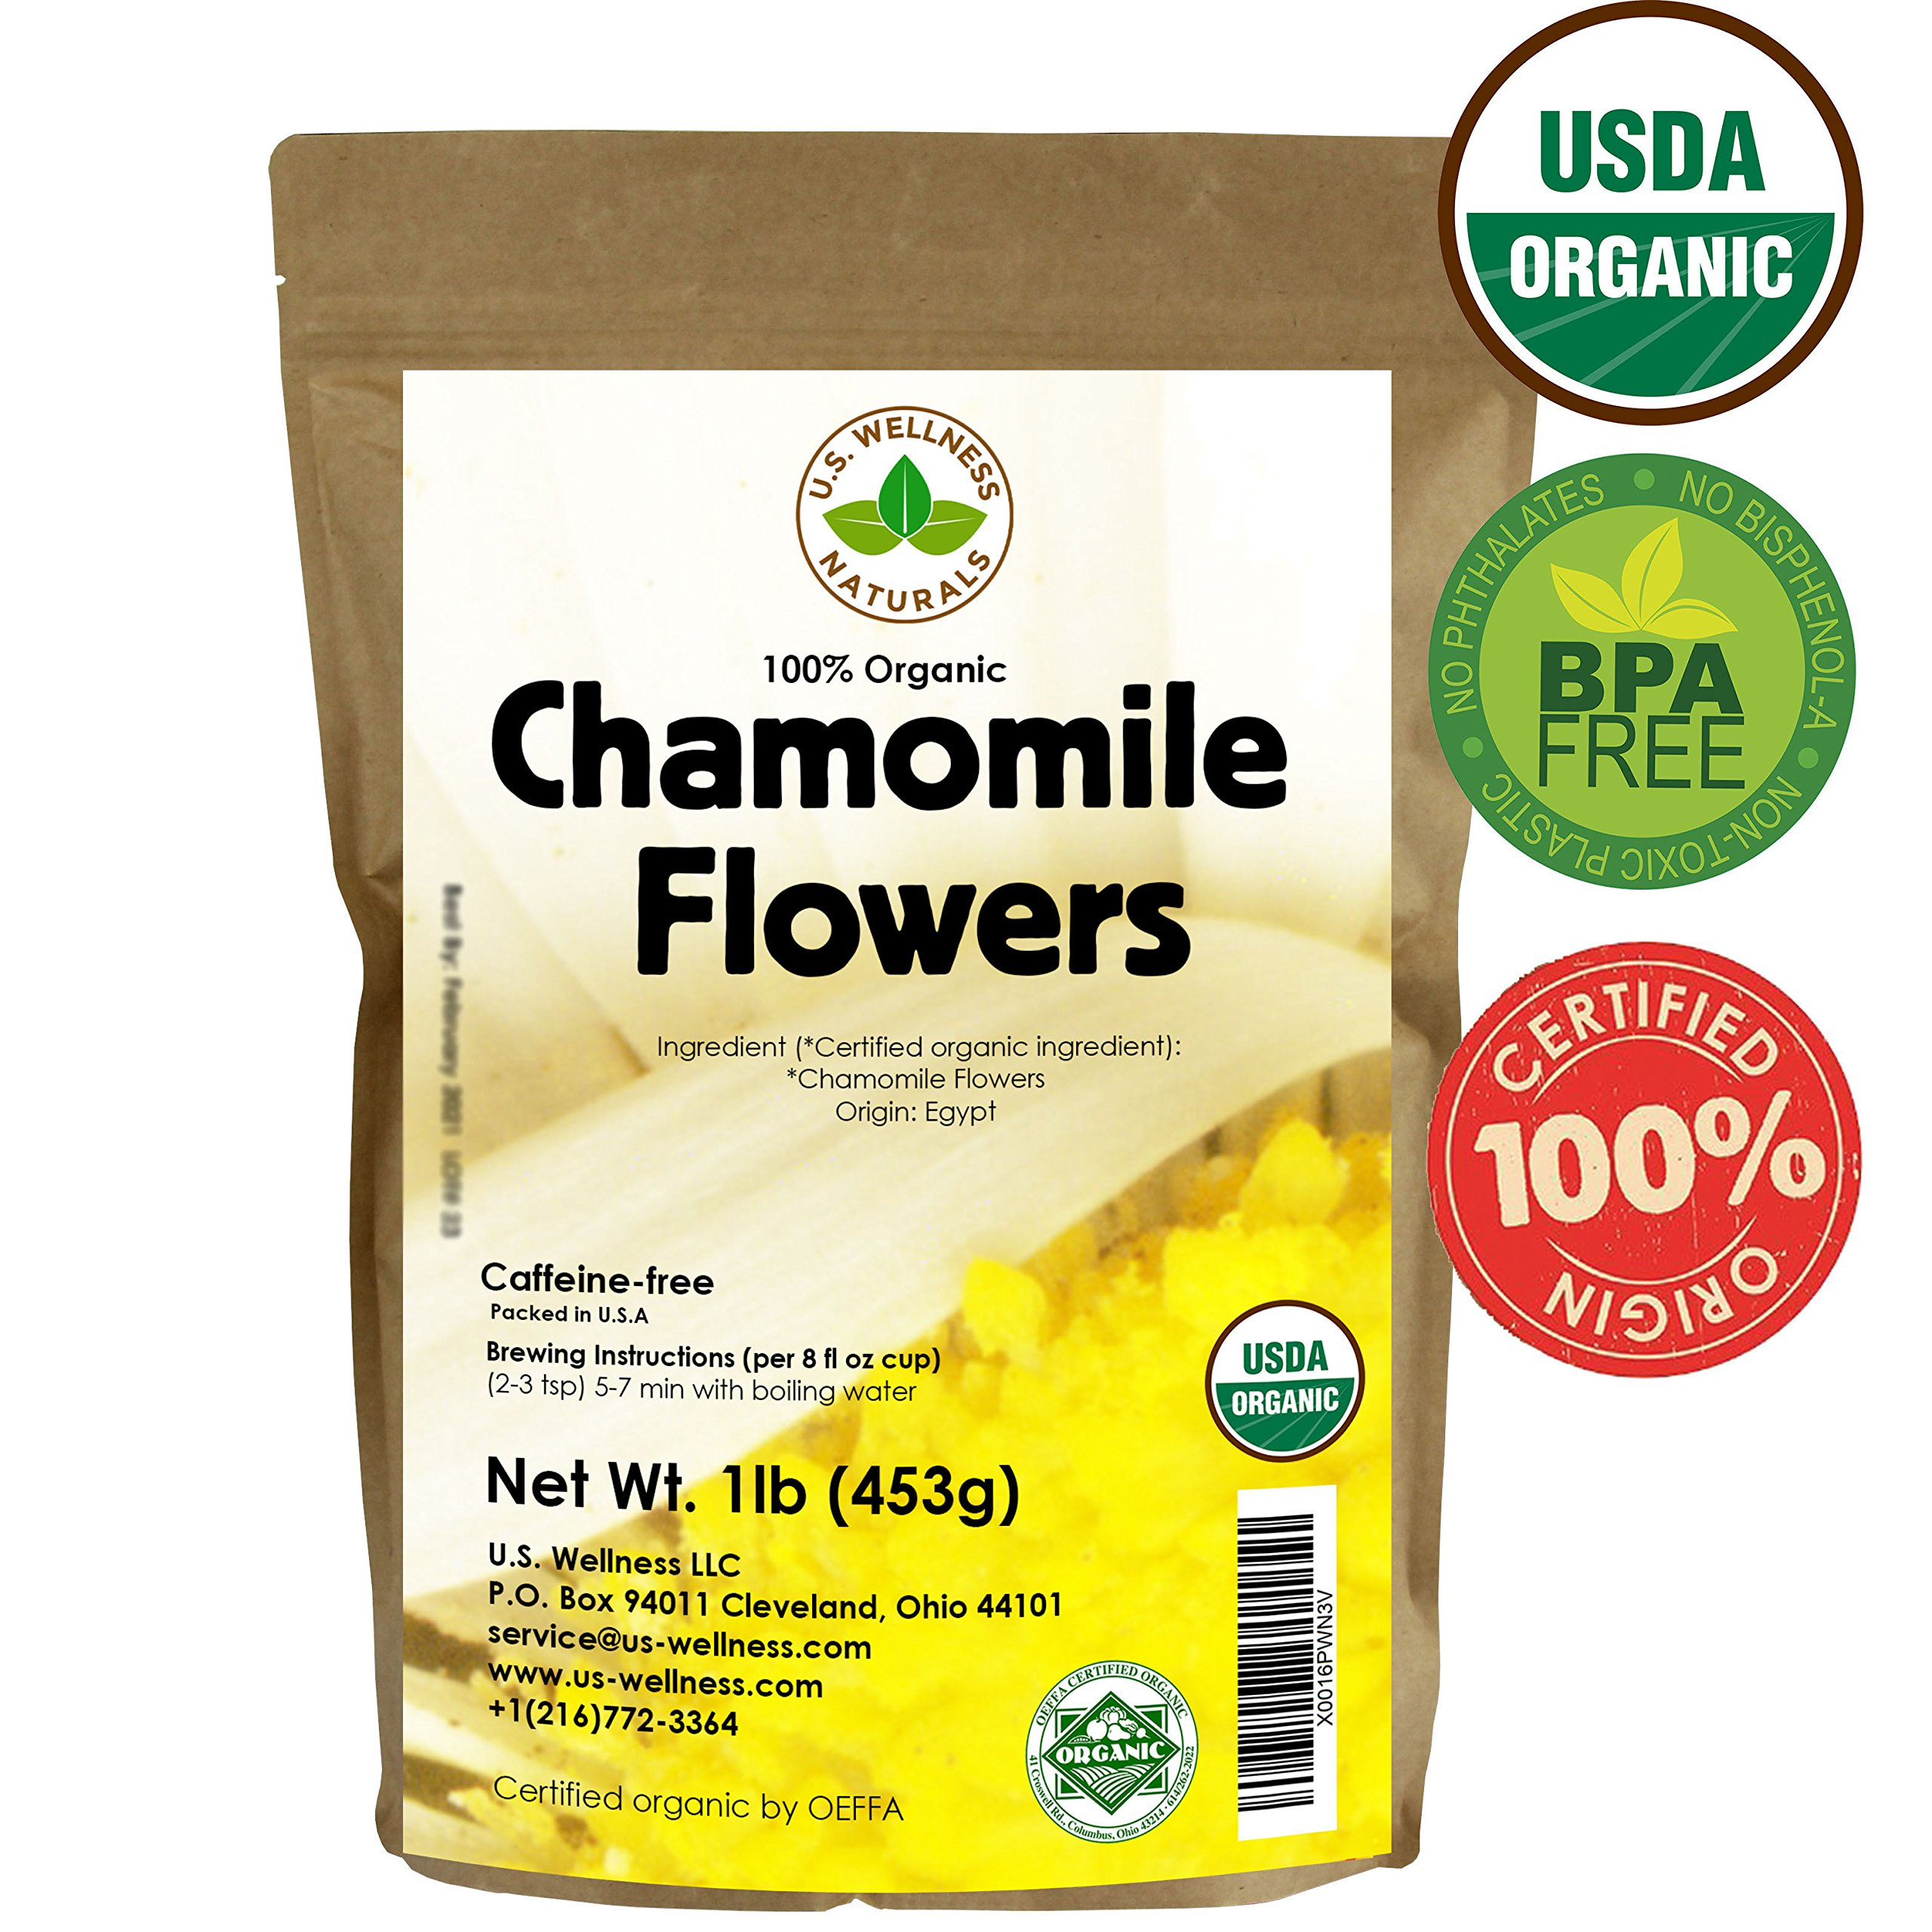 Chamomile Tea 1LB (16Oz) 100% CERTIFIED Organic (USDA seal) Chamomile Flowers Herbal Tea (Matricaria Chamomilla) in 1 lb Bulk Kraft BPA free Resealable Bags from U.S. Wellness